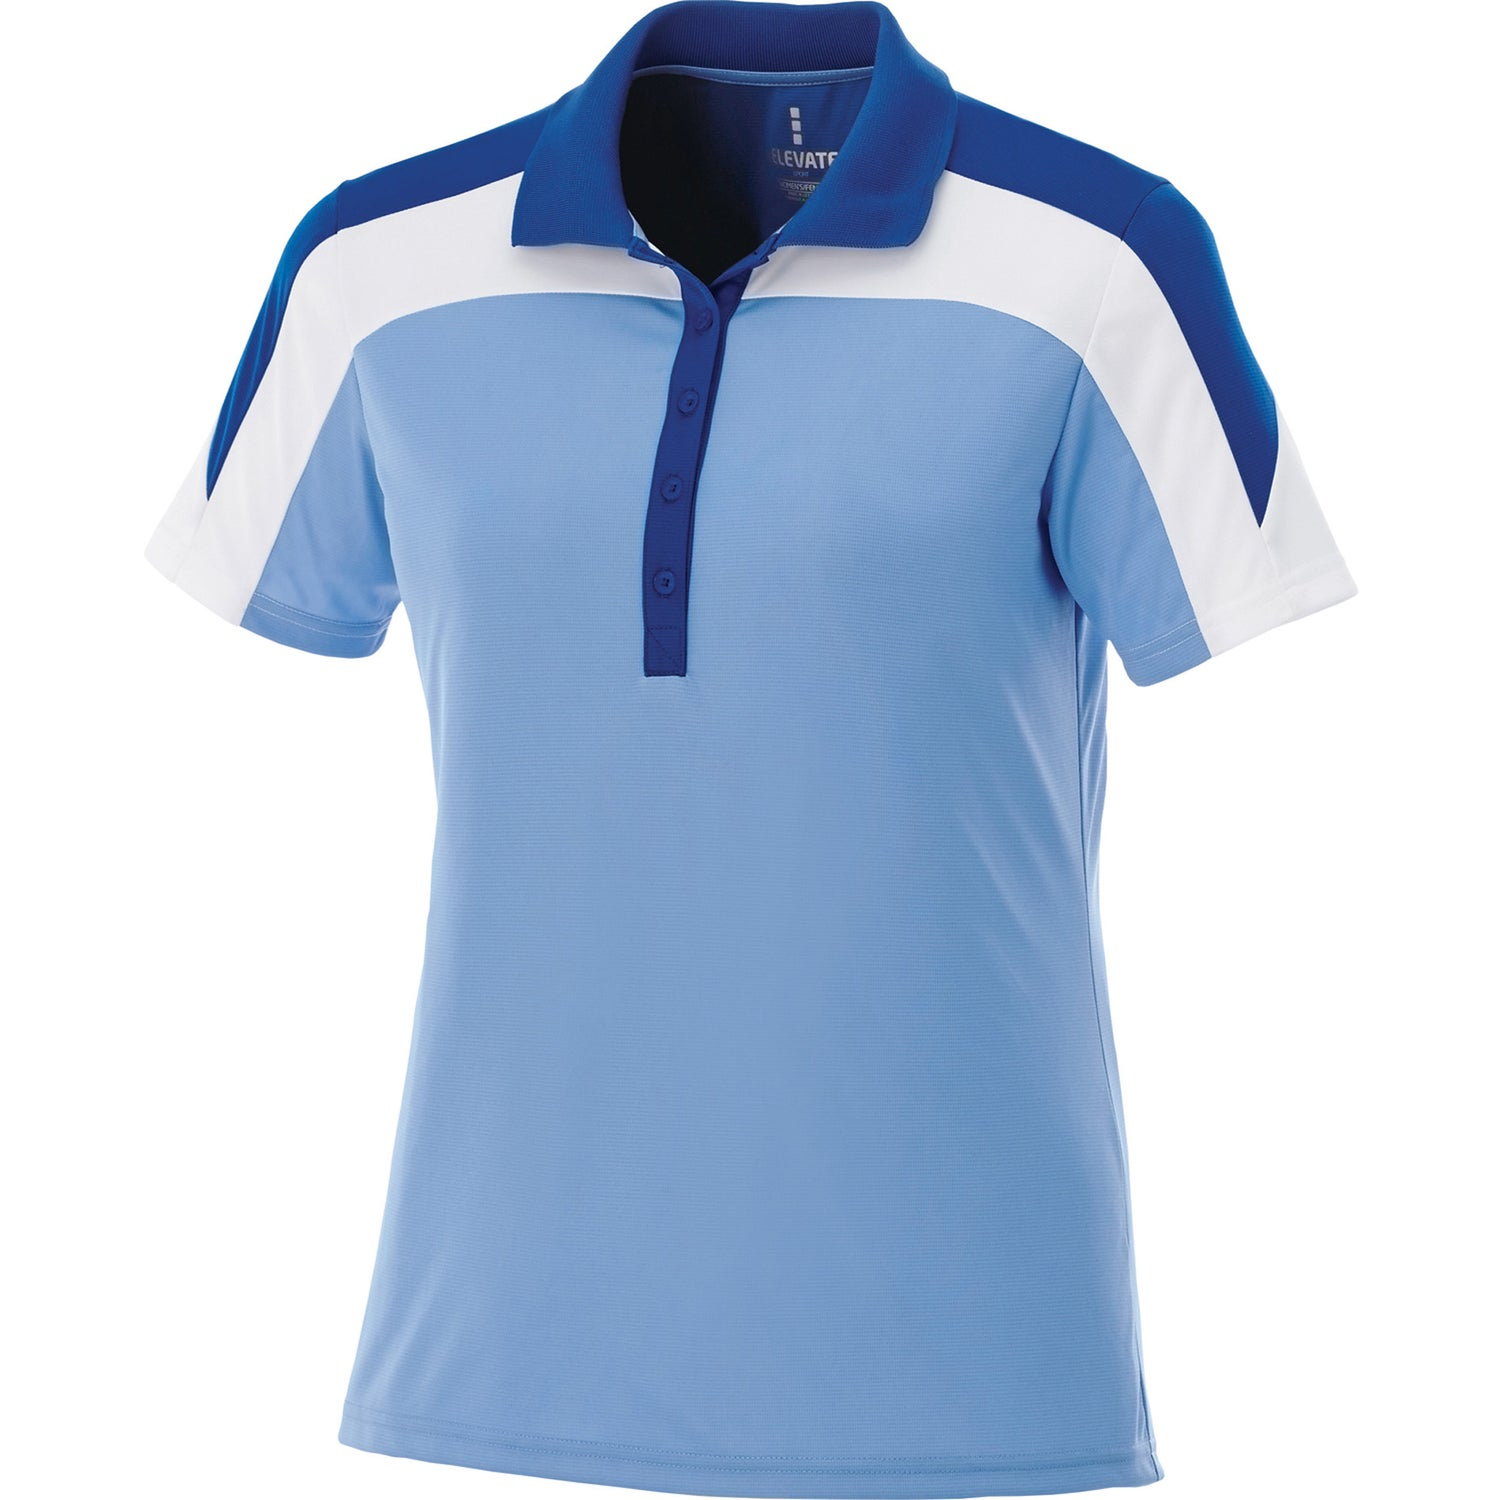 Promotional Womens Vesta Short Sleeve Polo Shirt By Trimarks With